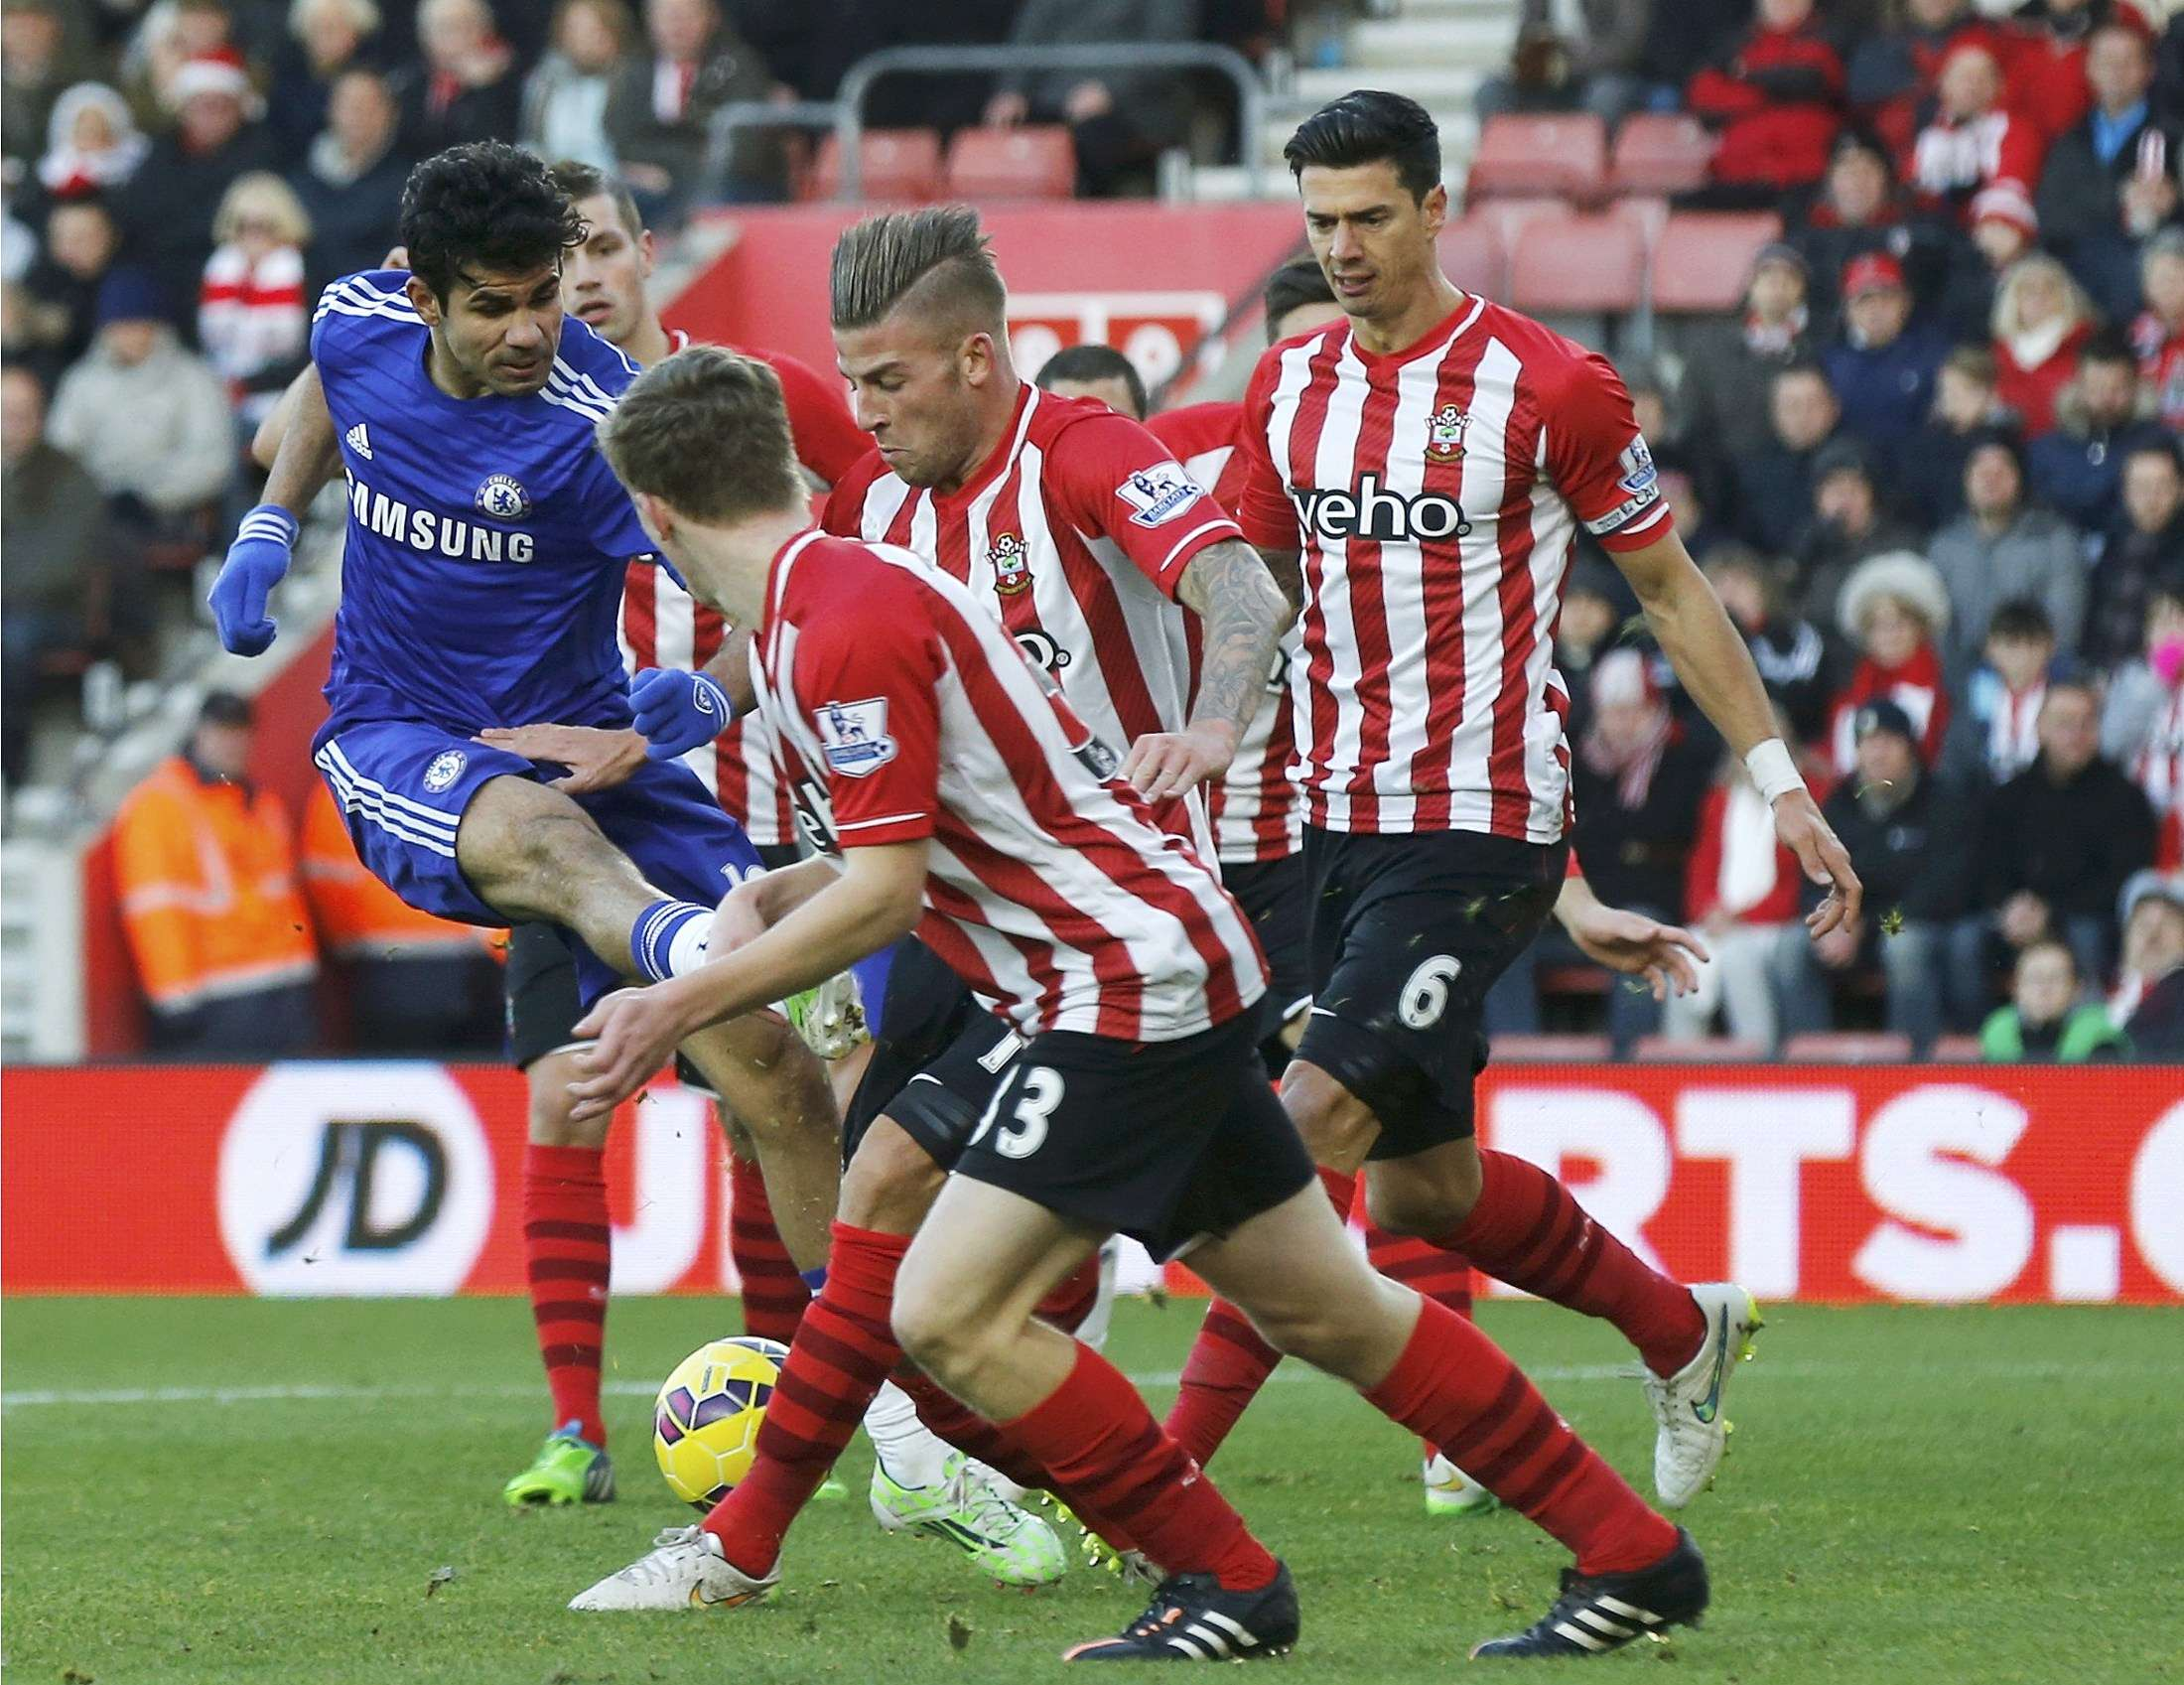 Diego Costa of Chelsea tries to shoot through a crowd of Southampton defenders during their English Premier League soccer match at St Mary's Stadium in Southampton, southern England, December 28, 2014. REUTERS/Suzanne Plunkett (BRITAIN - Tags: SPORT SOCCER) FOR EDITORIAL USE ONLY. NOT FOR SALE FOR MARKETING OR ADVERTISING CAMPAIGNS. EDITORIAL USE ONLY. NO USE WITH UNAUTHORIZED AUDIO, VIDEO, DATA, FIXTURE LISTS, CLUB/LEAGUE LOGOS OR 'LIVE' SERVICES. ONLINE IN-MATCH USE LIMITED TO 45 IMAGES, NO VIDEO EMULATION. NO USE IN BETTING, GAMES OR SINGLE CLUB/LEAGUE/PLAYER PUBLICATIONS. Foto: SUZANNE PLUNKETT/REUTERS